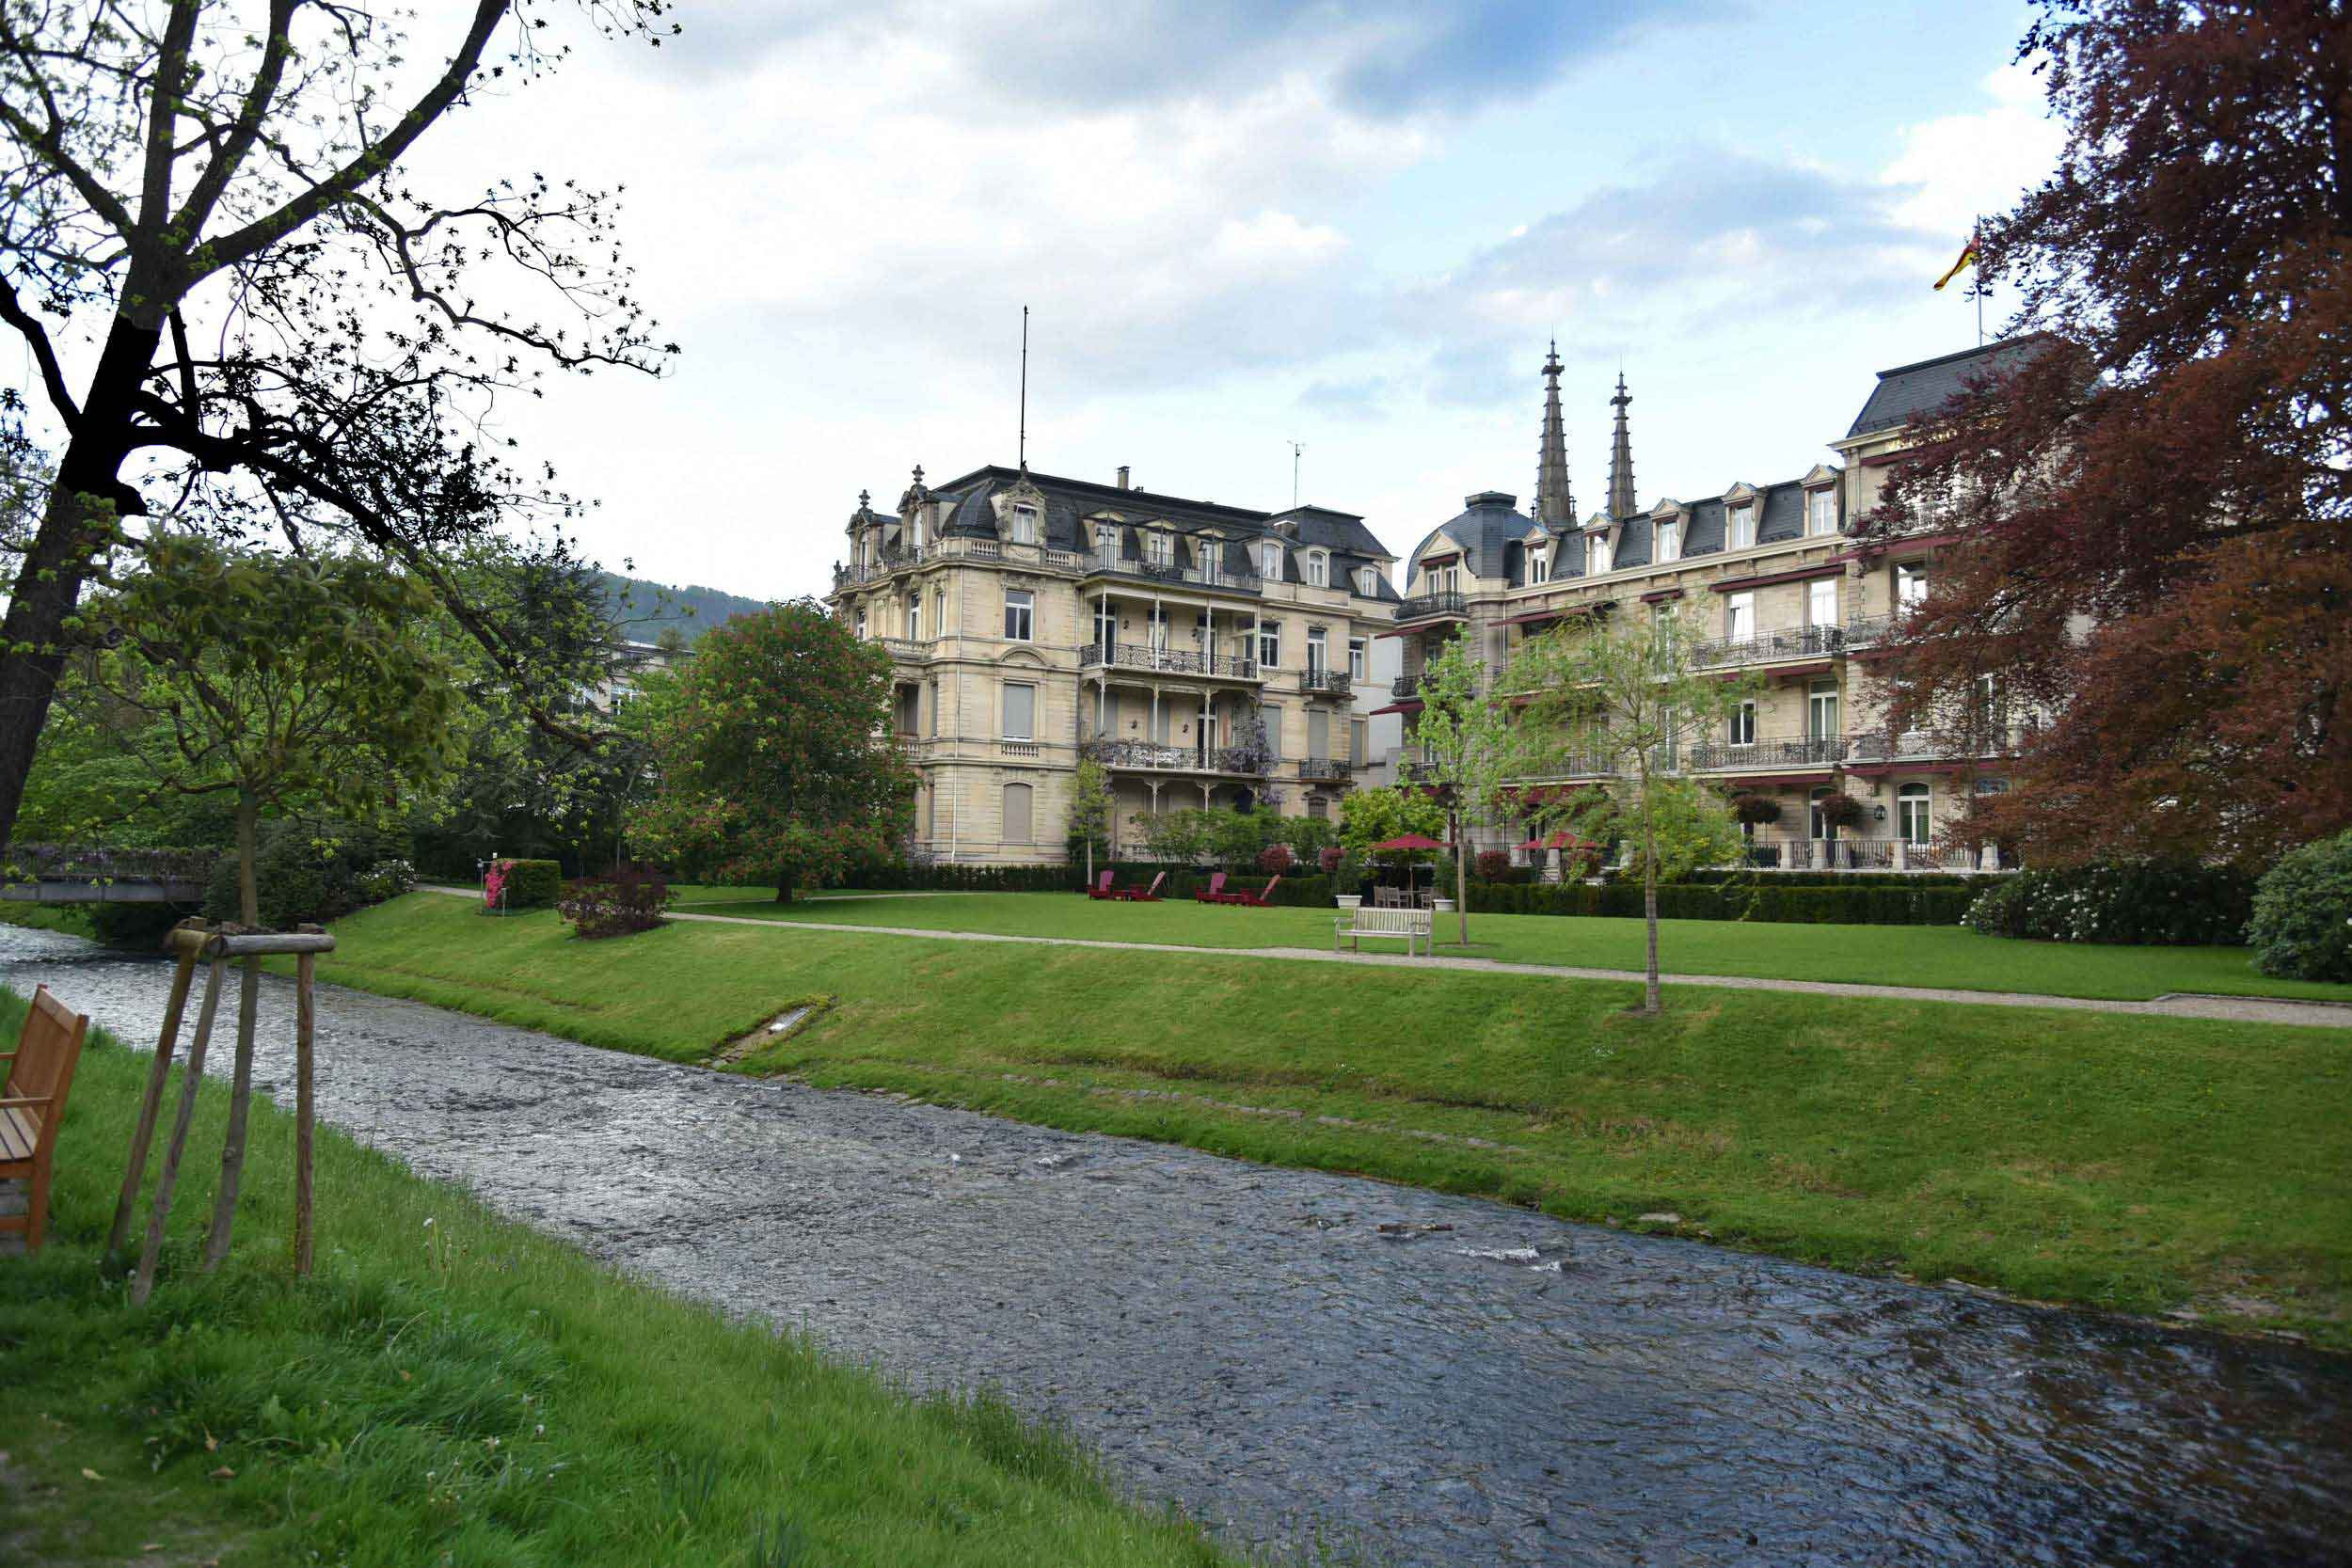 Brenners Park Hotel and Spa, Baden Baden, Germany. Image©thingstodot.com